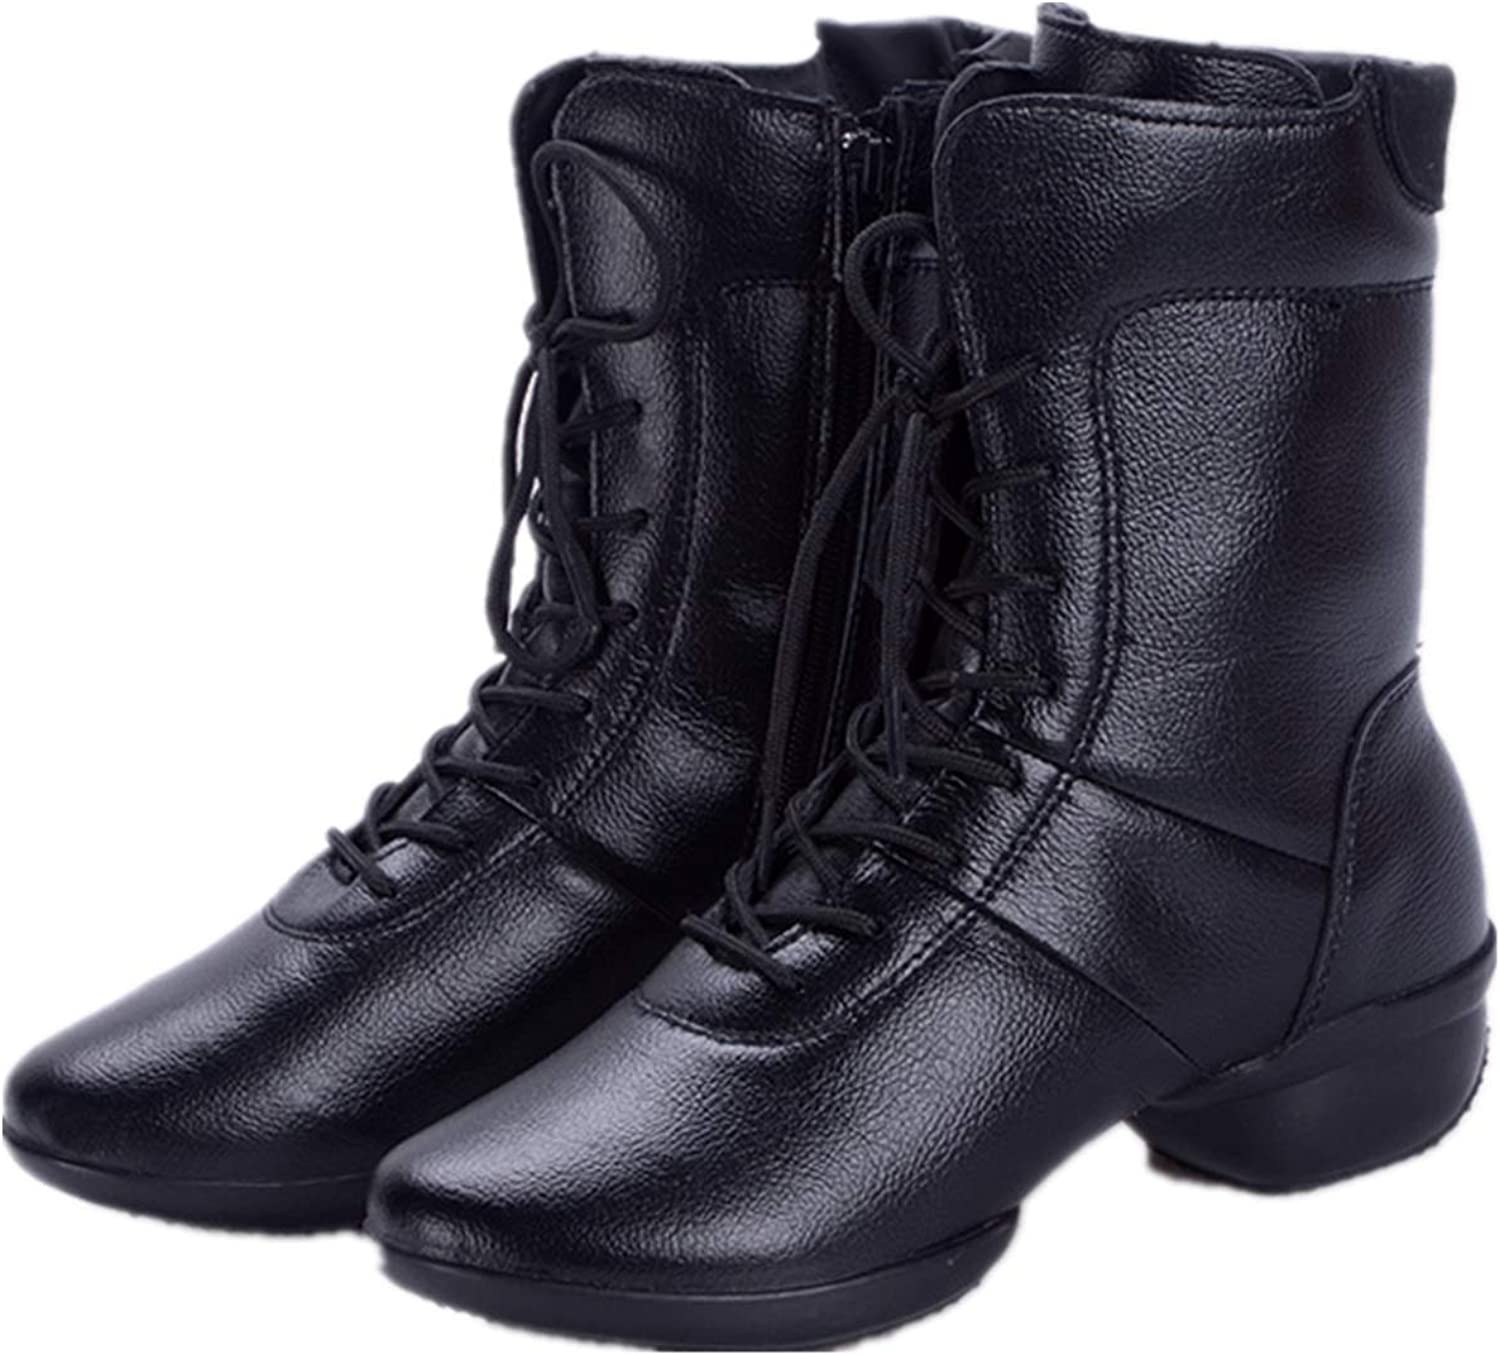 Xujw-shoes High Top Dance Boots with Fleece Lining Side Zipper Genuine Leather Soft Outsoles for Women